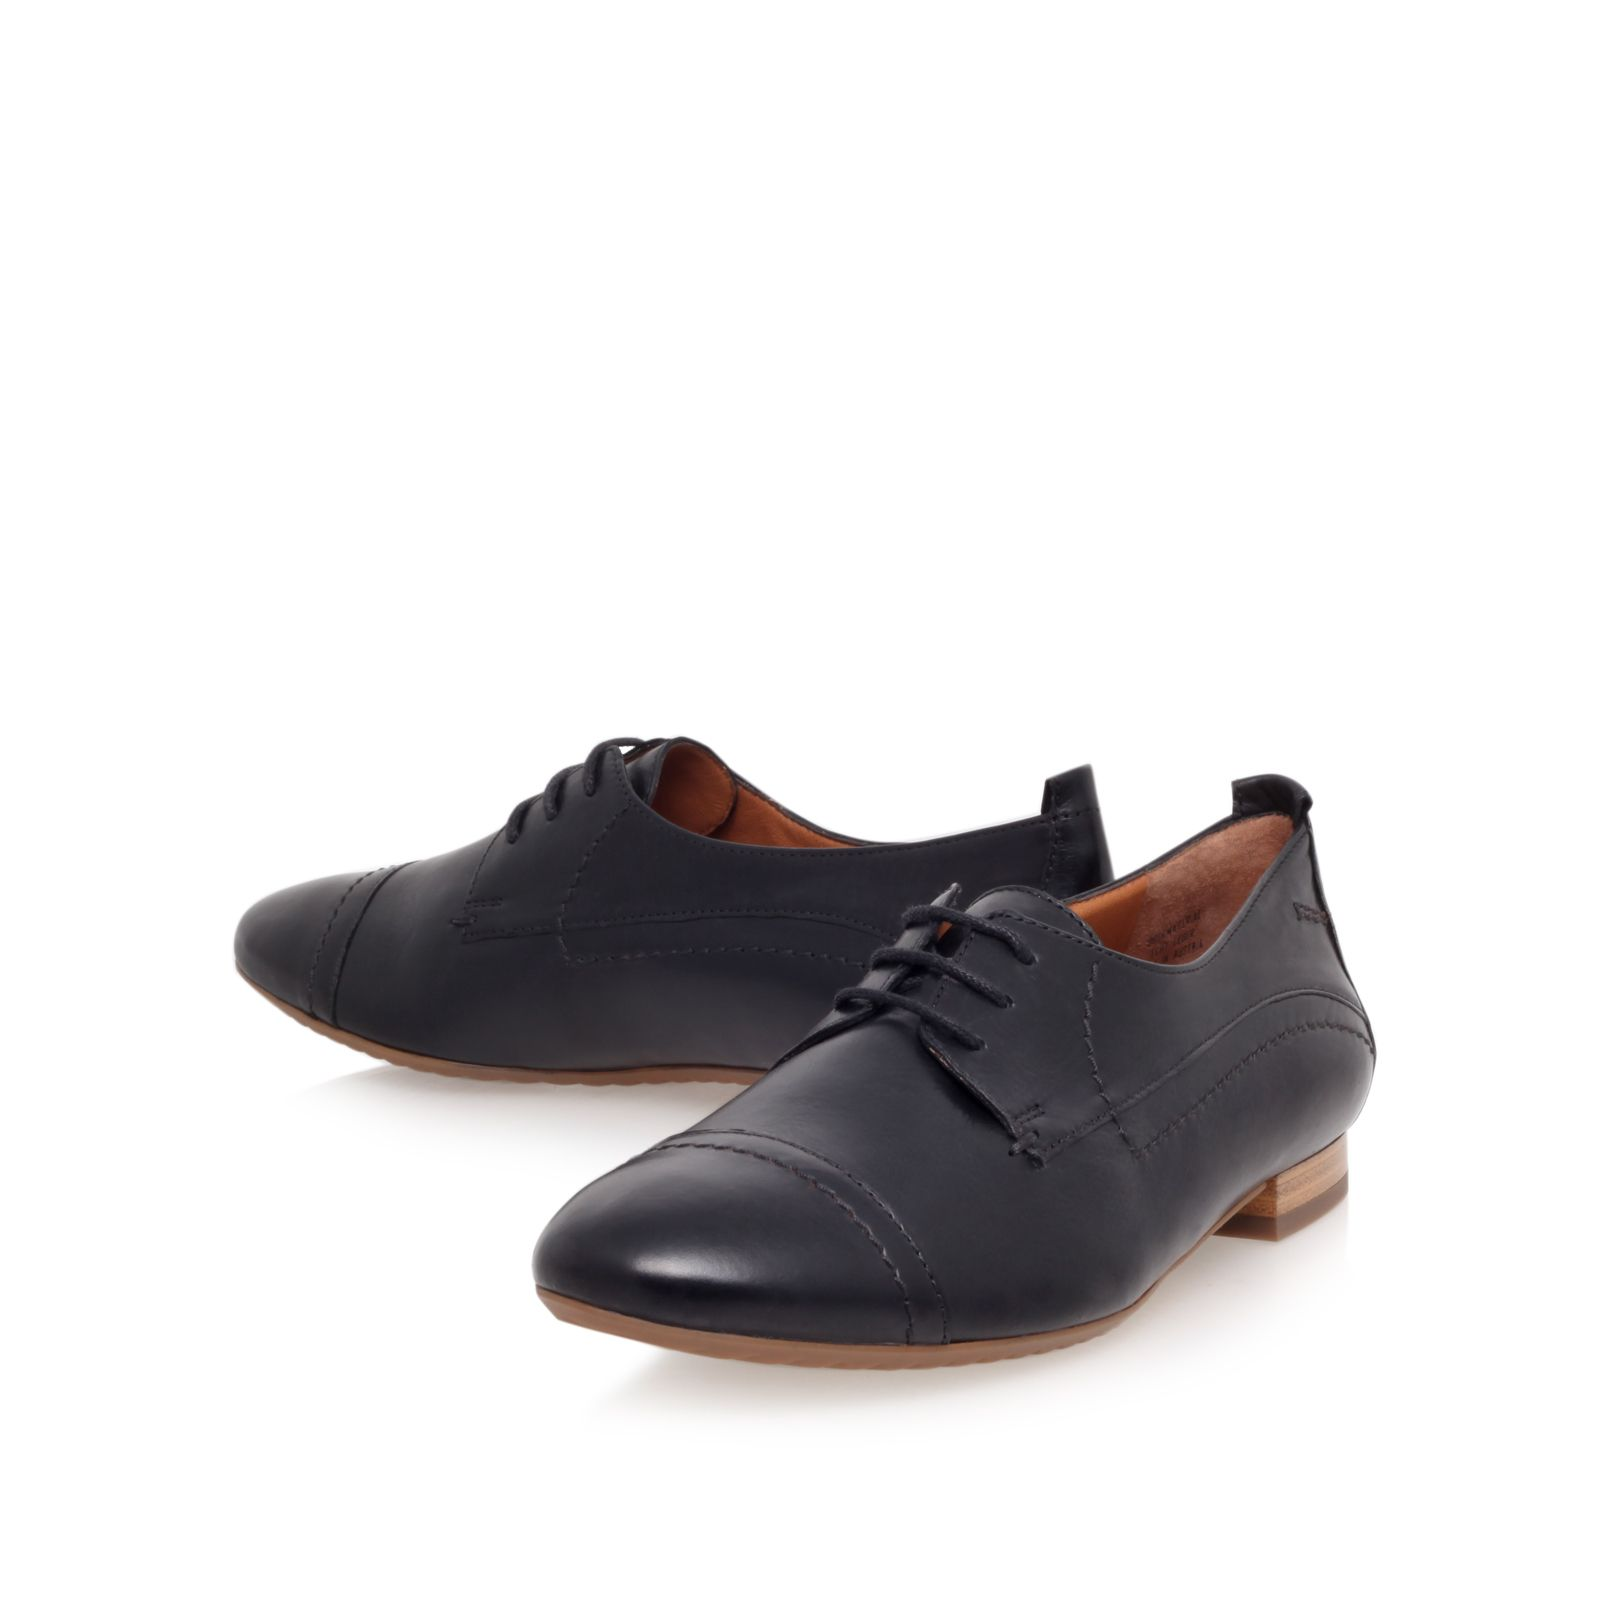 Charley flat lace up shoes